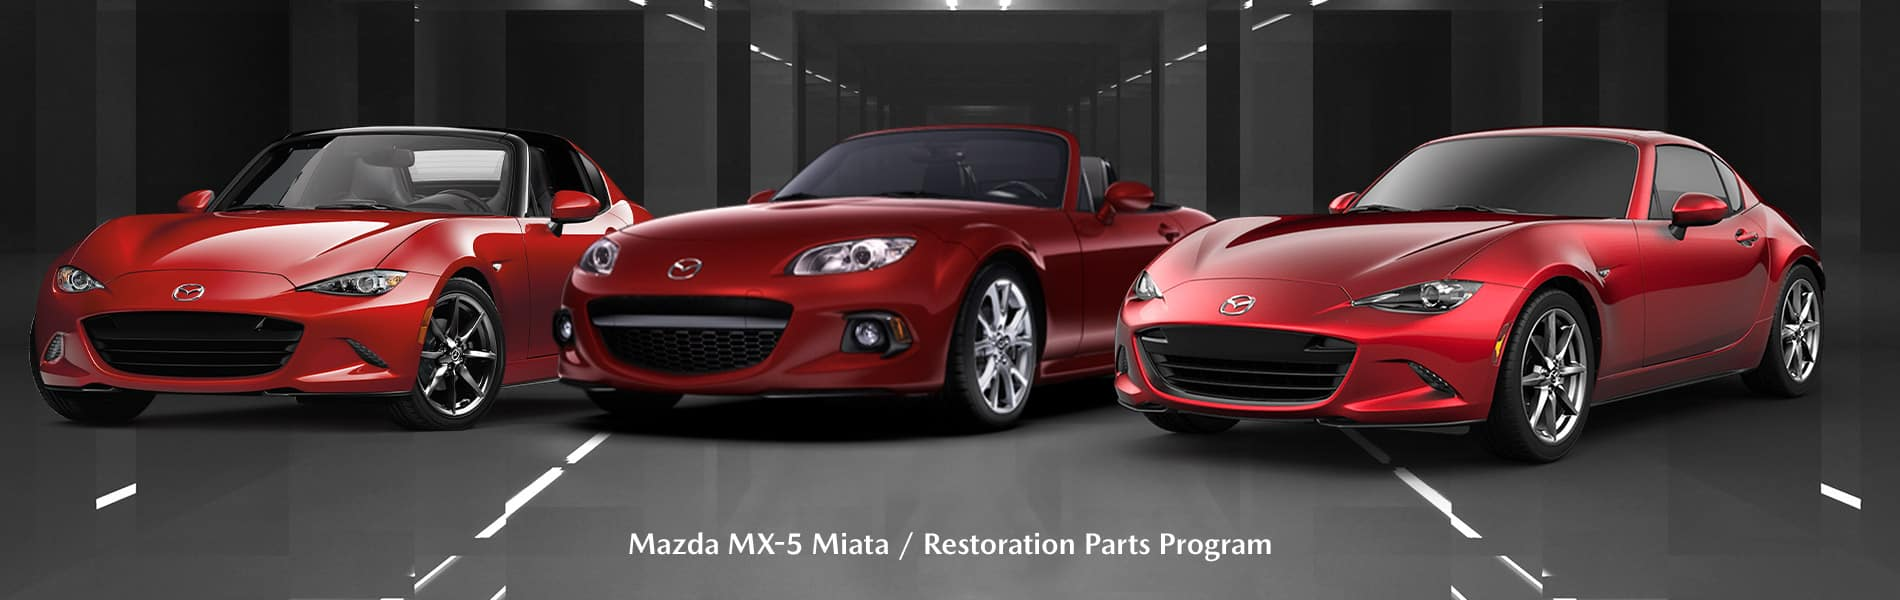 Mazda Miata Restoration Parts Program - Mazda of Bedford - Bedford, OH